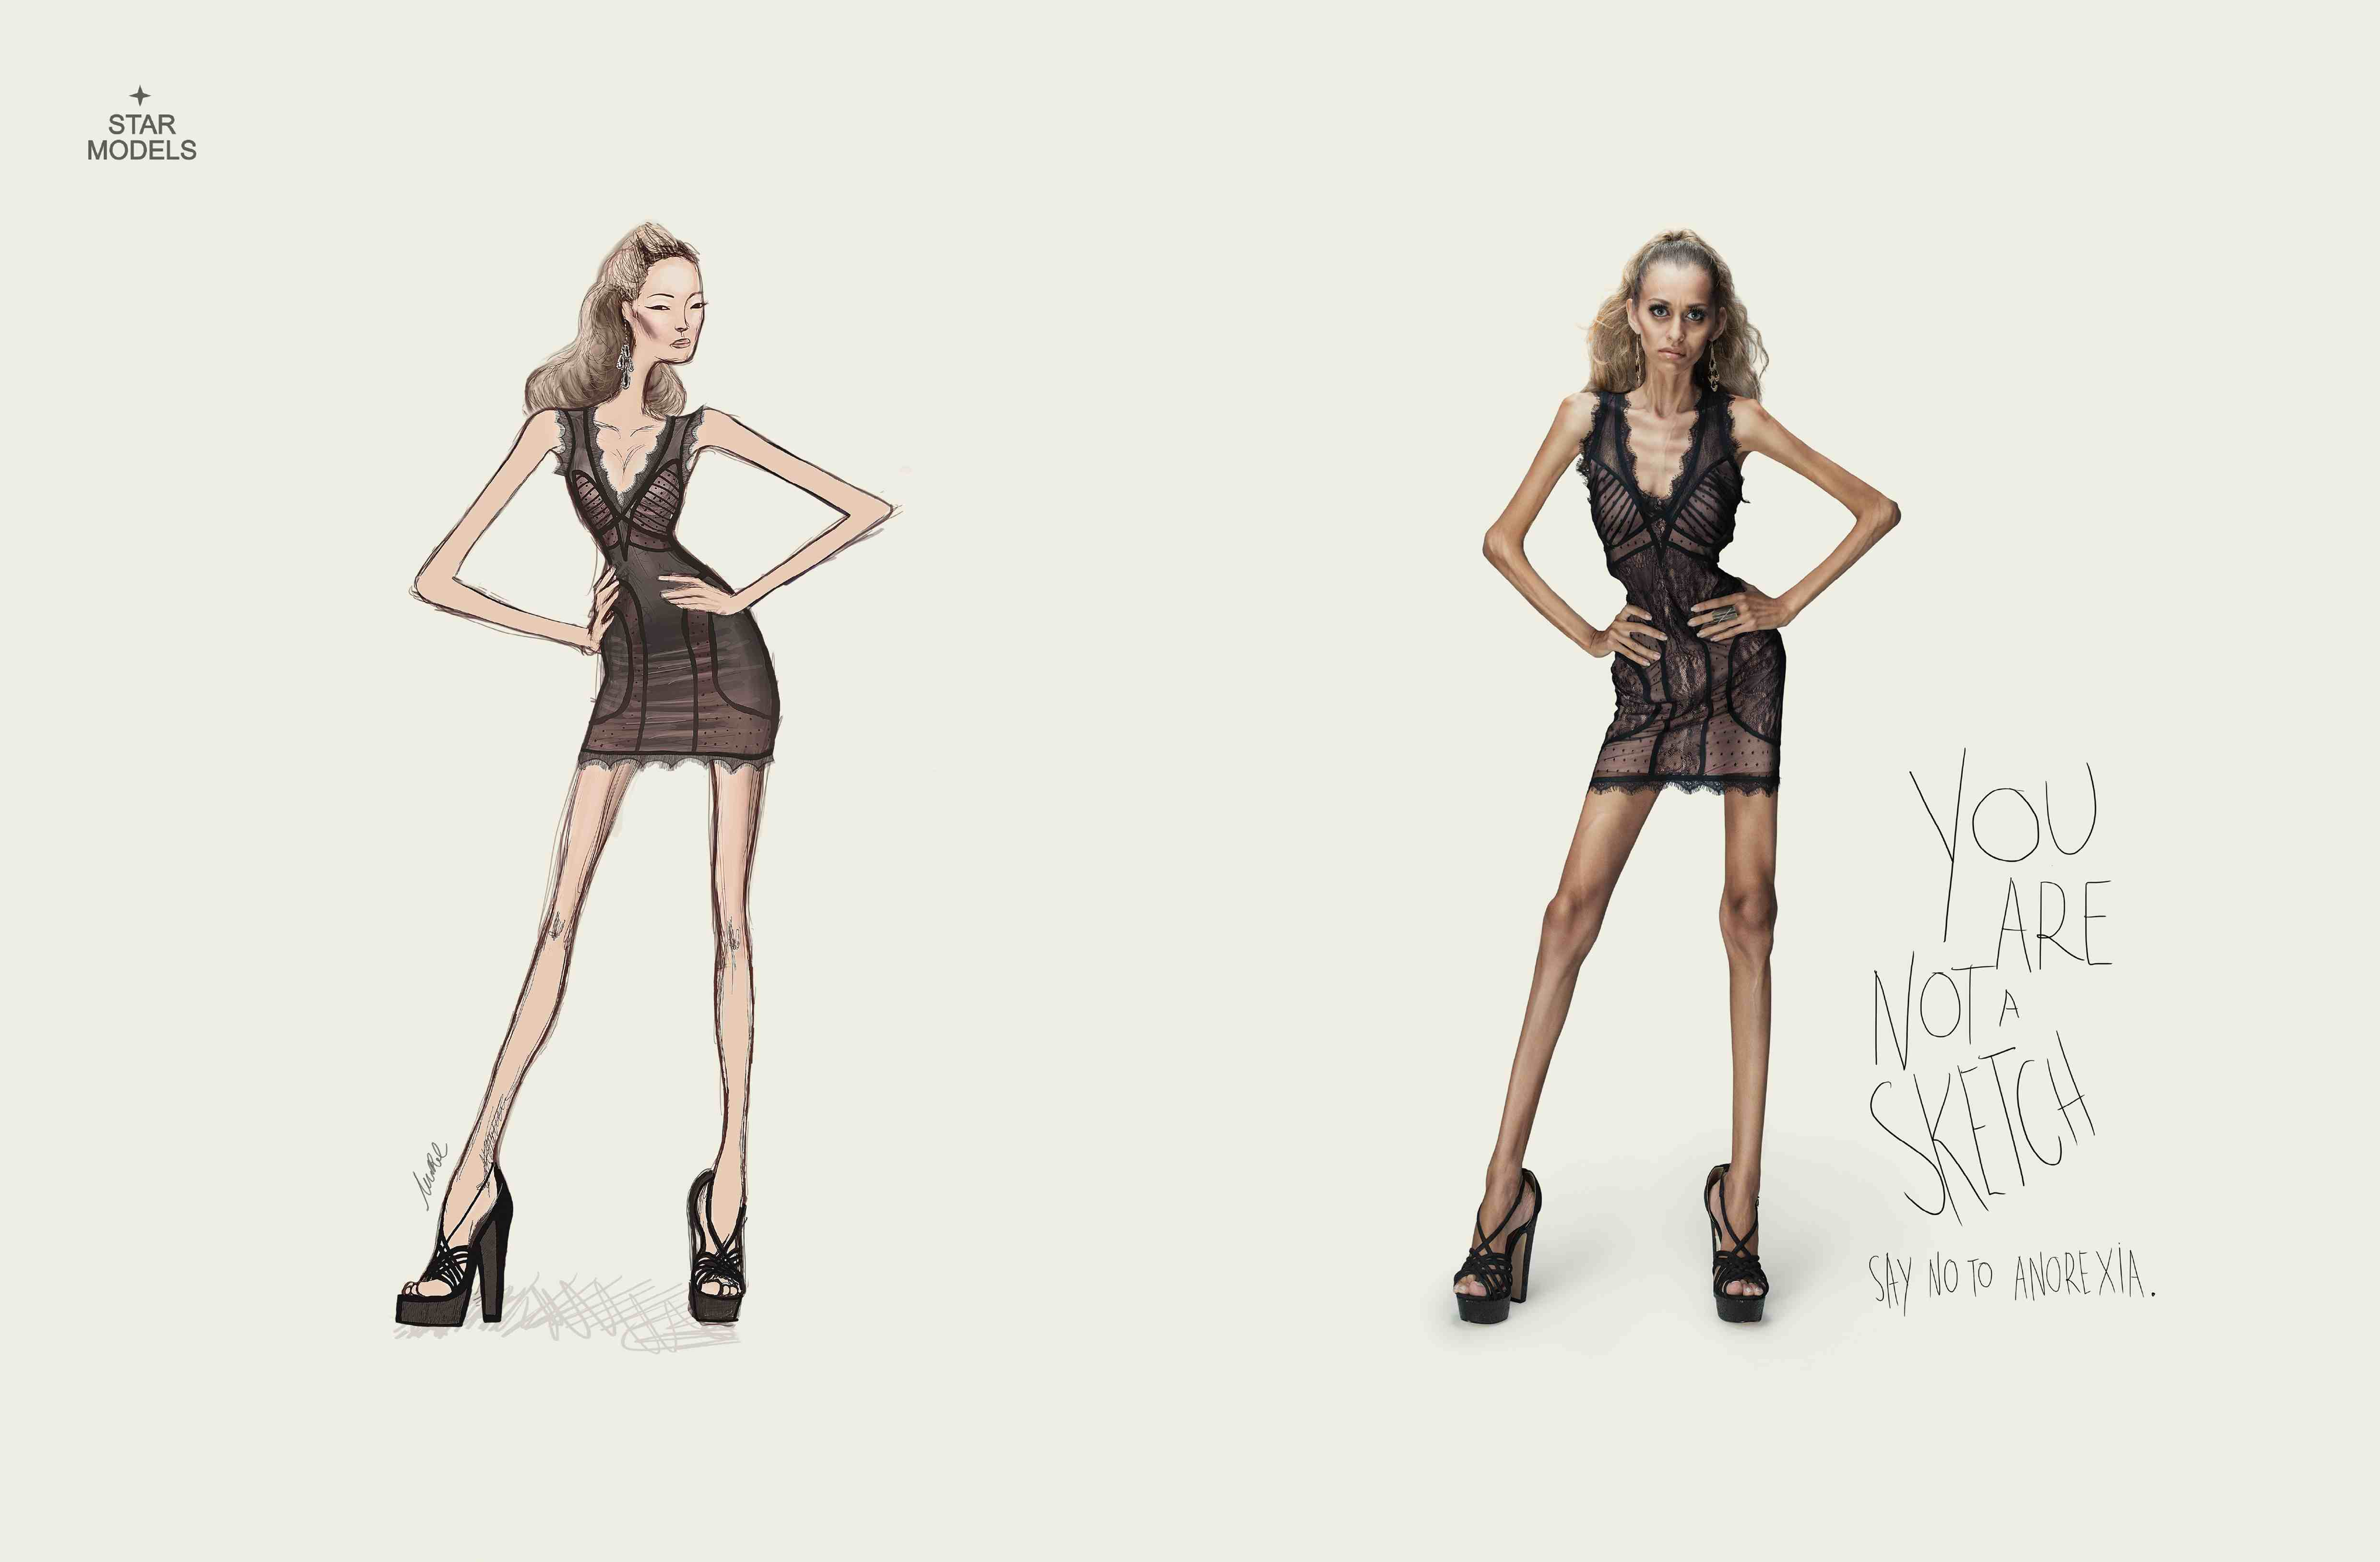 You are not a sketch. Say no to anorexia.